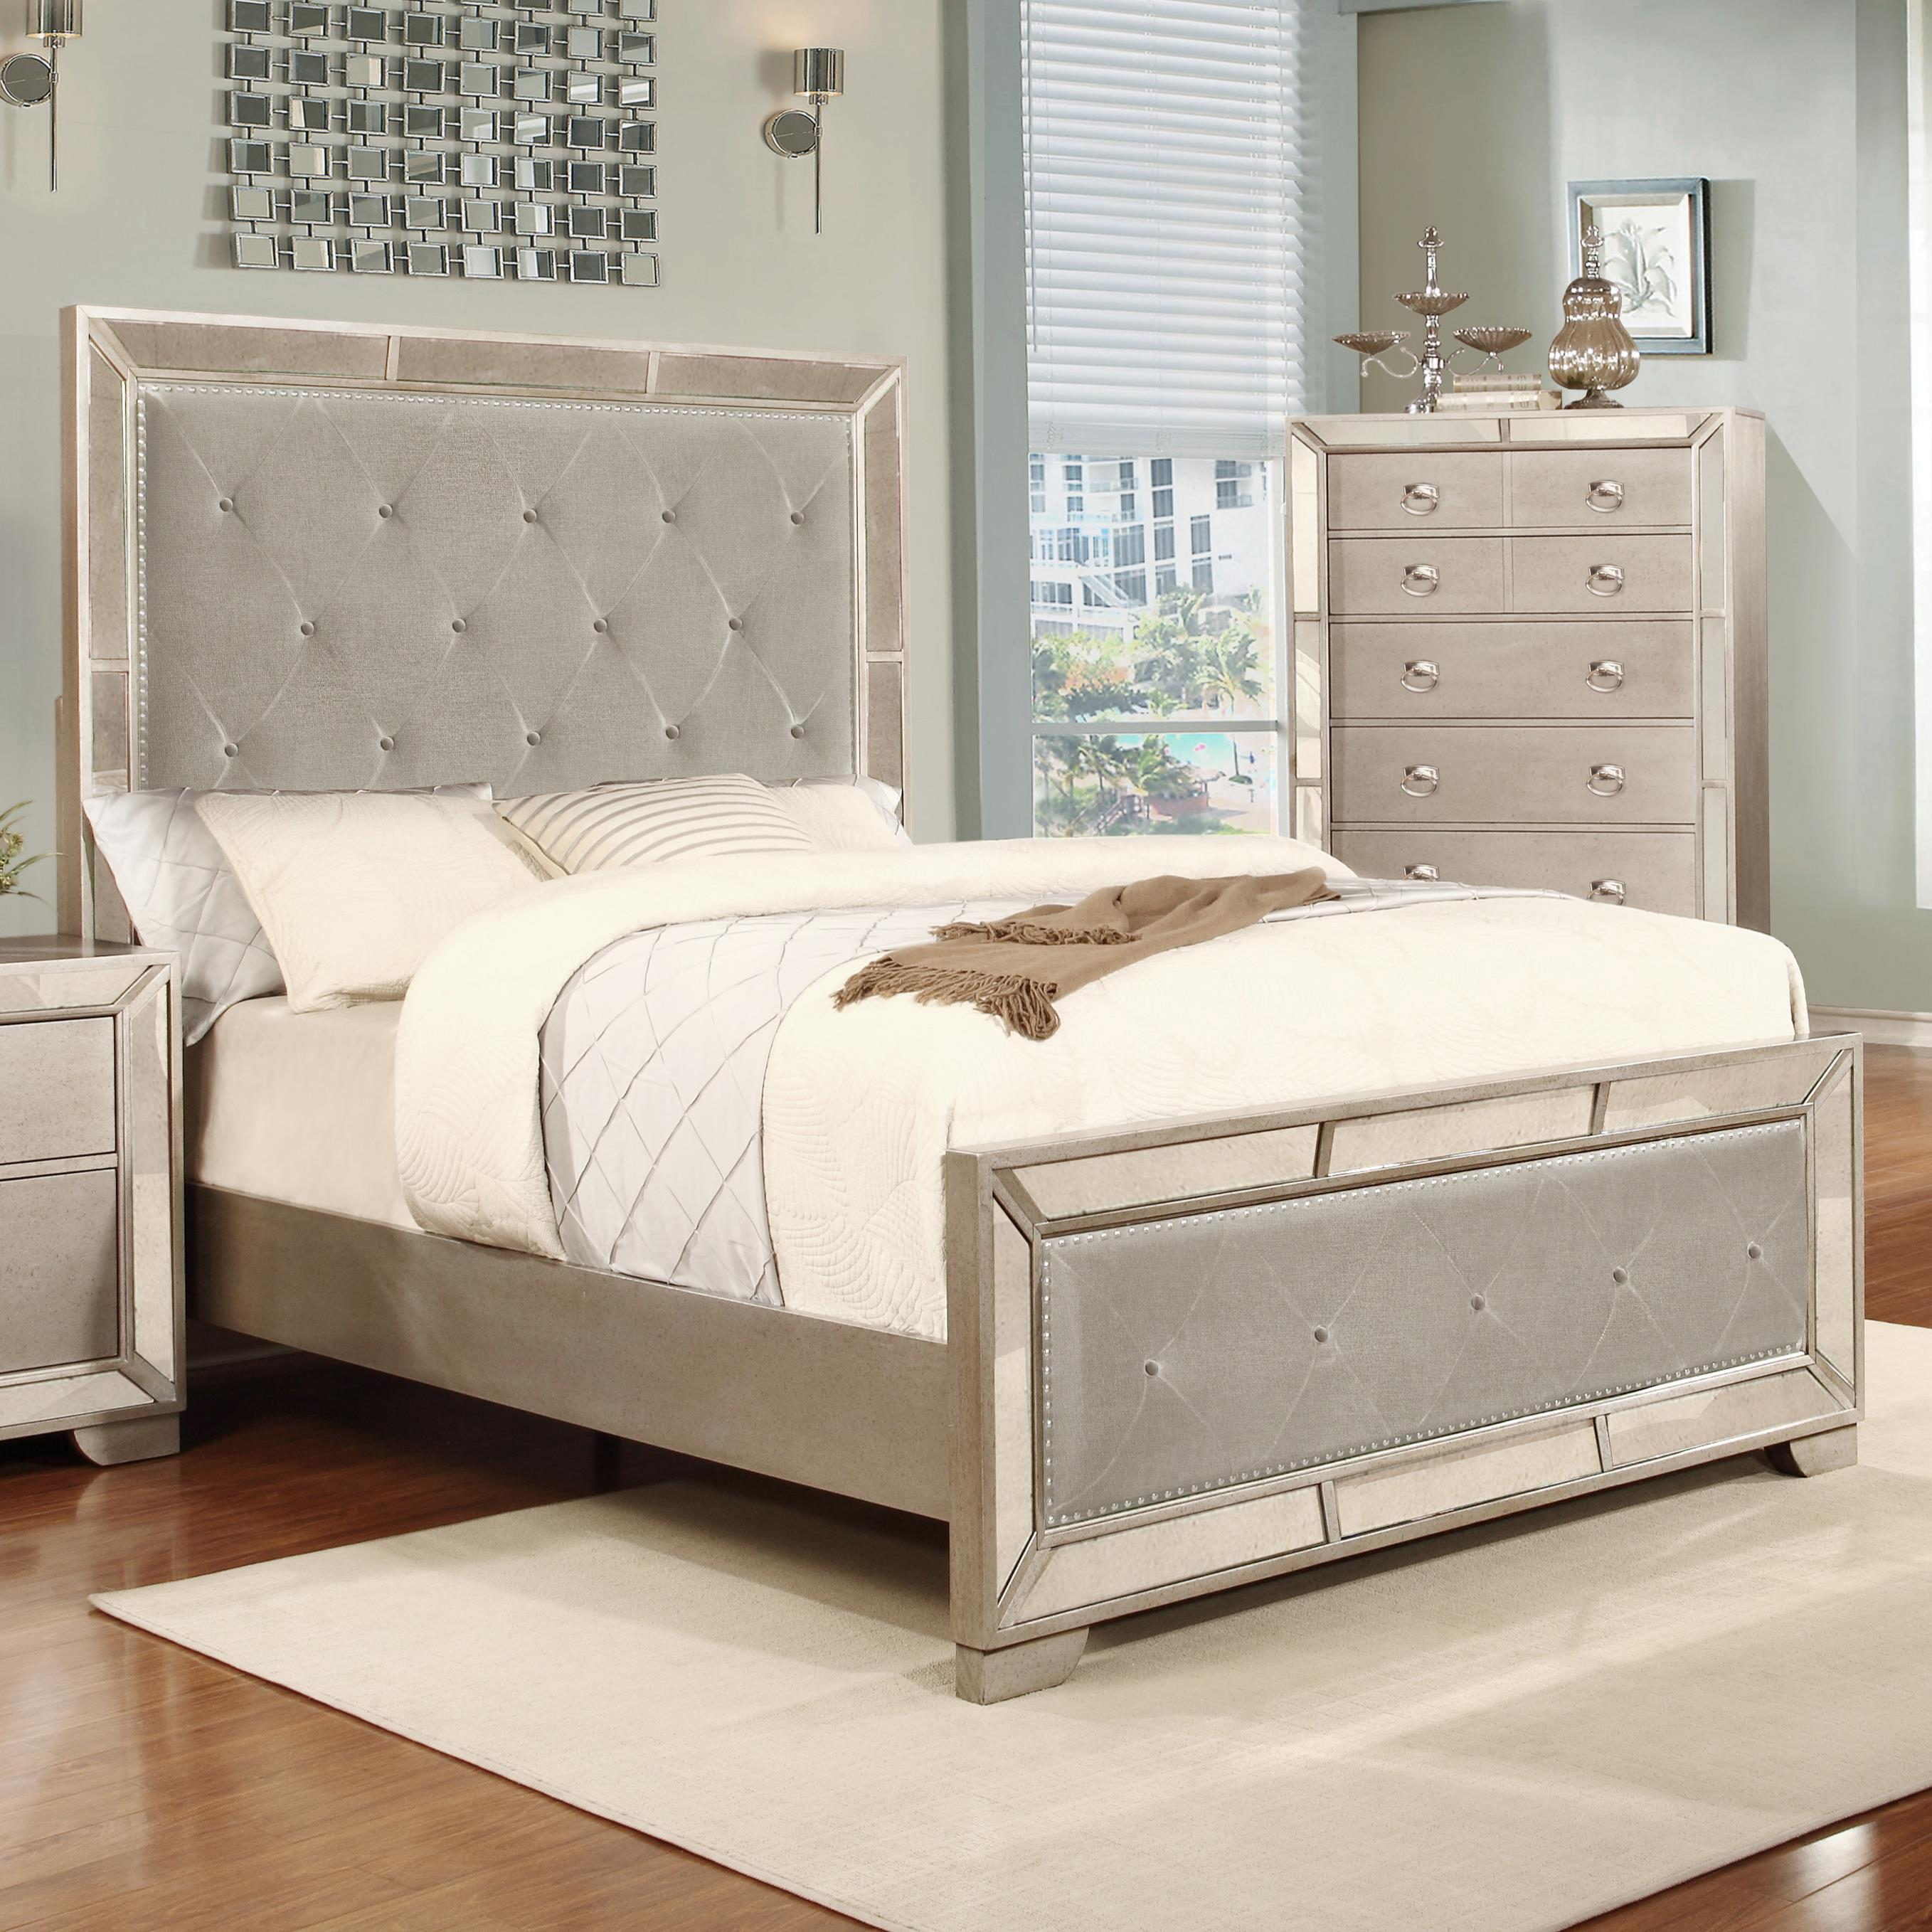 Lifestyle Glitzy King Size Panel Bed  - Item Number: C5219A-GP0+GPG+BPN-CNXX